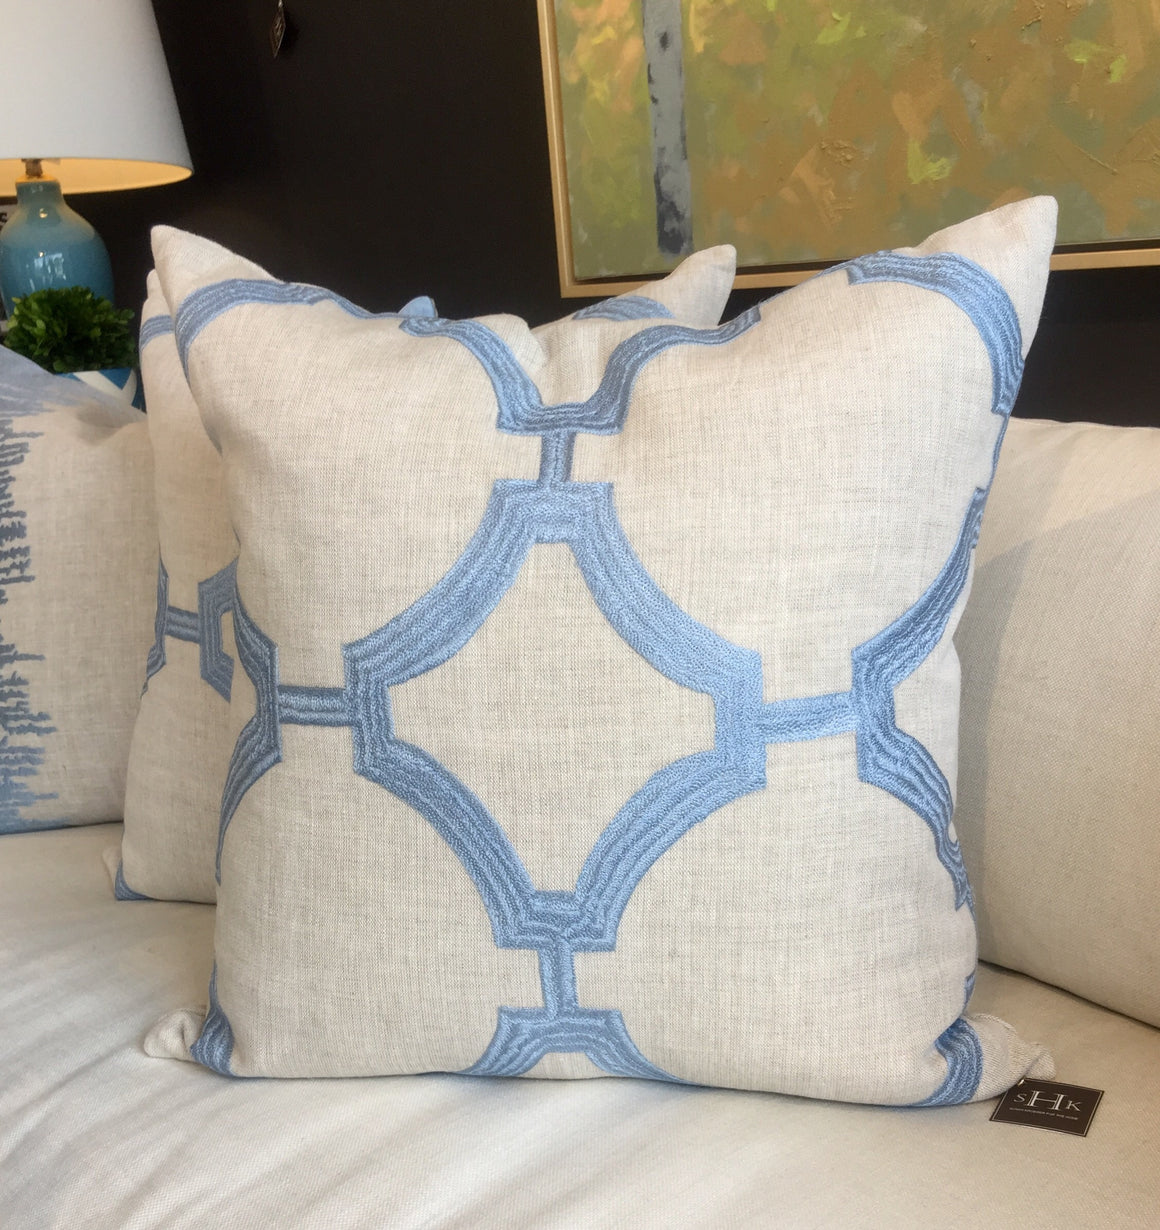 "A - THE BERRY PILLOW - Oatmeal with Blue Embroidery  - 22"" X 22""  -  Two in Stock  -   FREE SHIPPING"